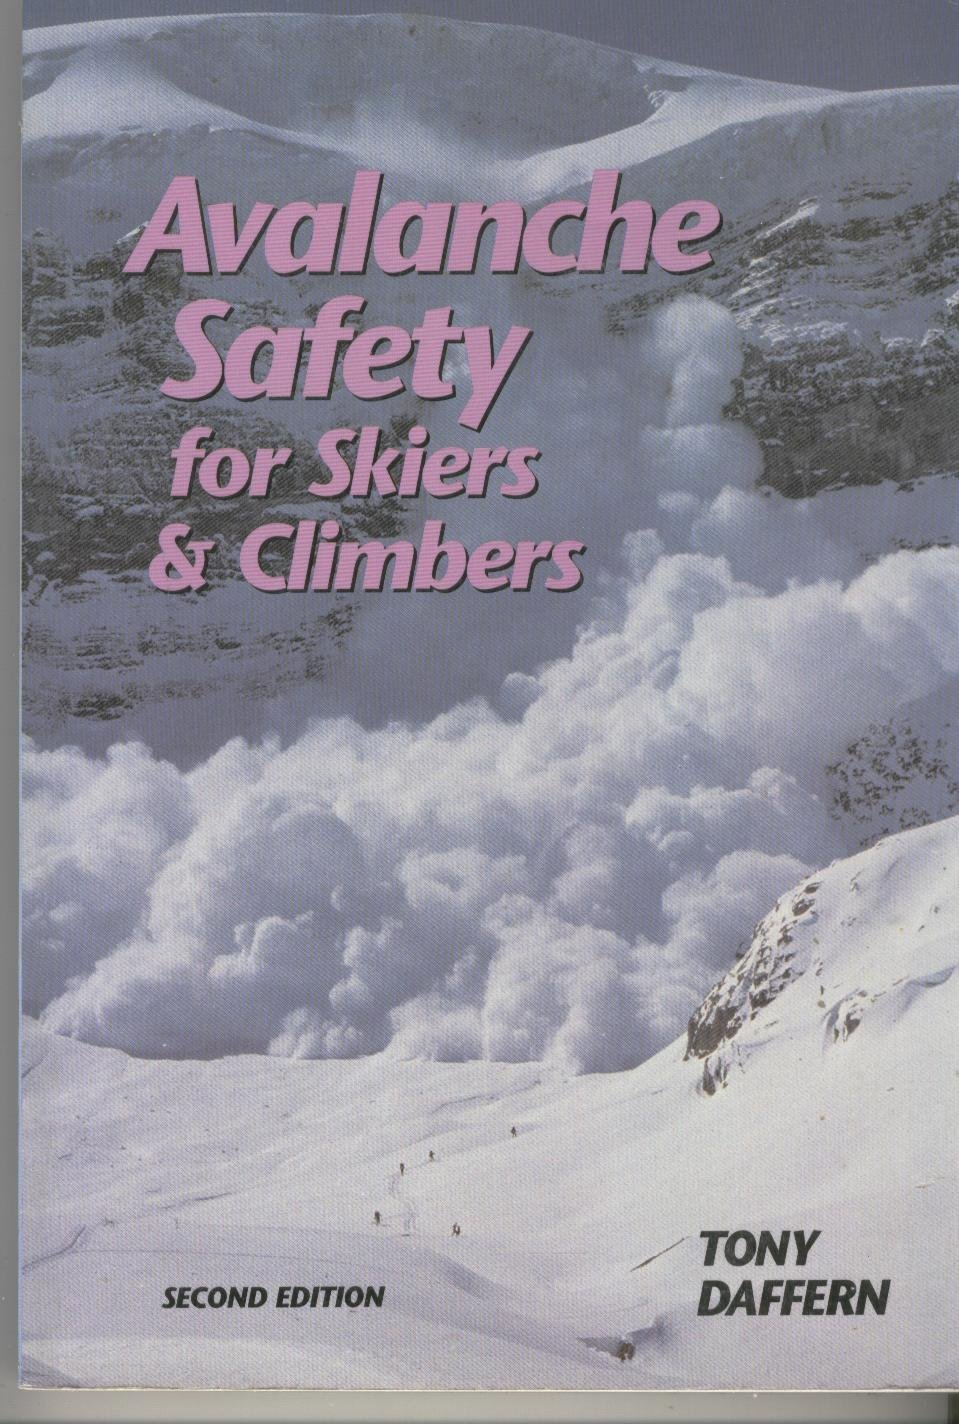 Avalanche Safety: For Skiers and Climbers